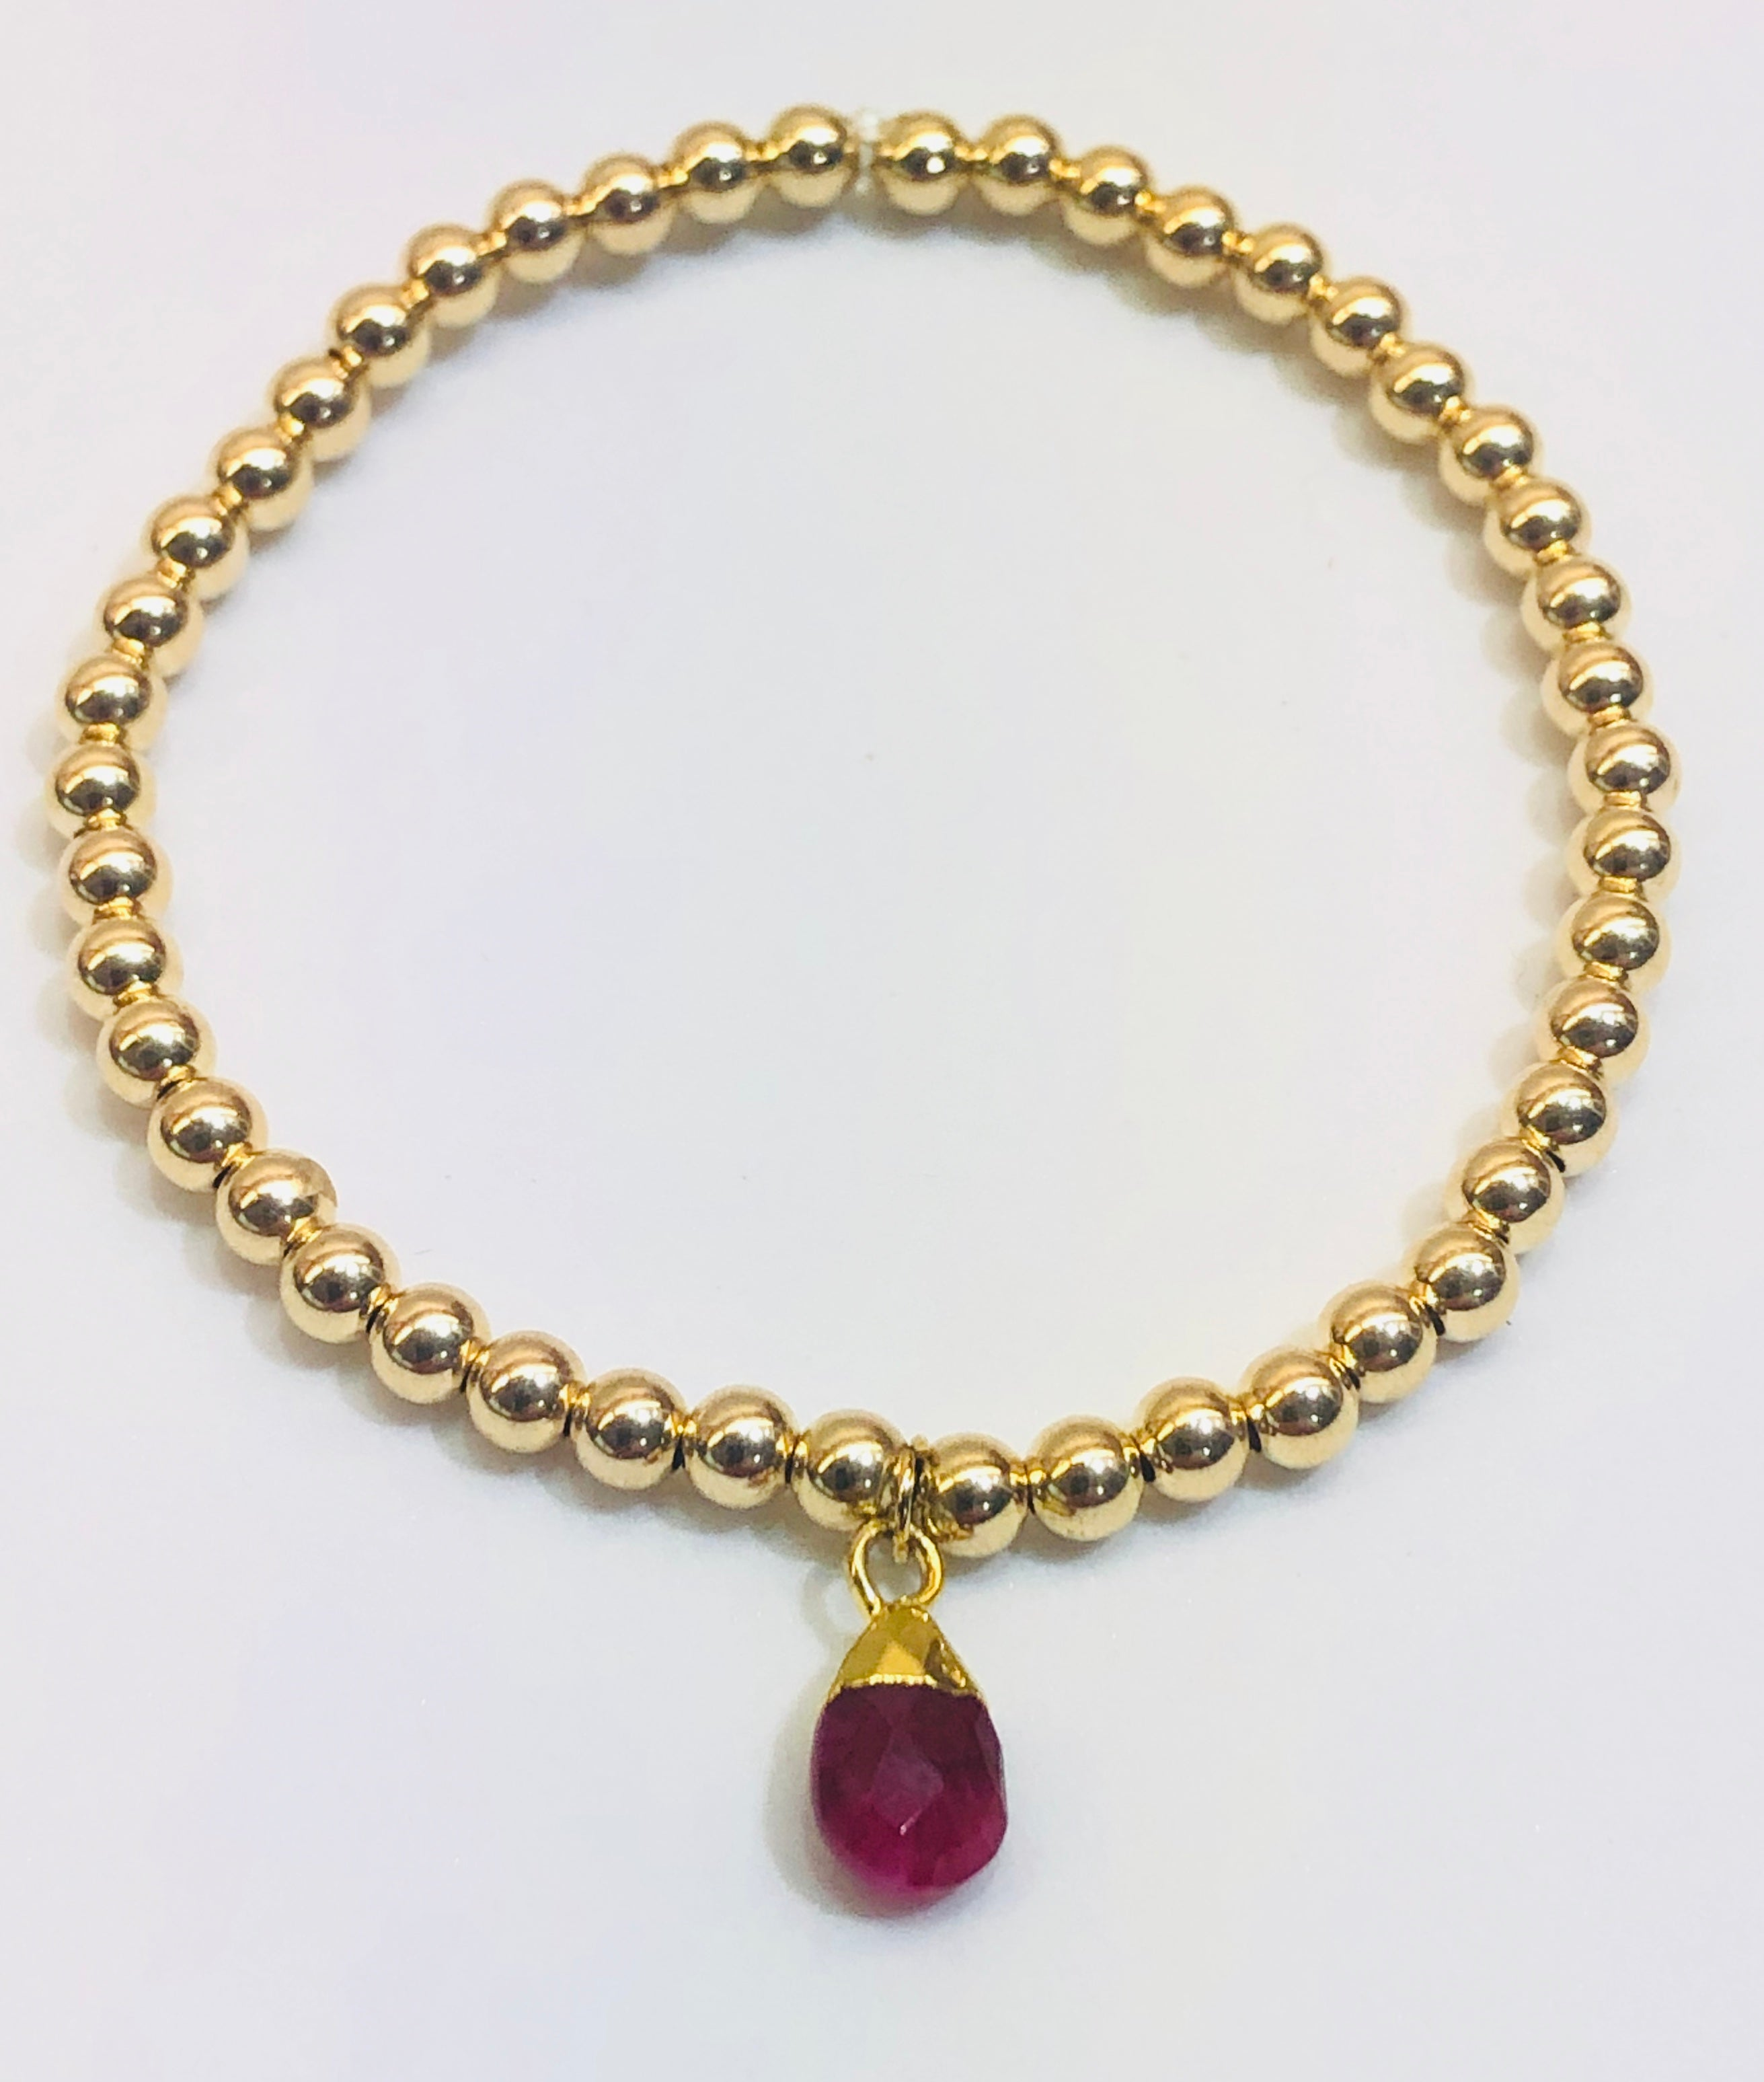 4mm 14k Gold Filled Bracelet with Ruby Jewel Hang Charm